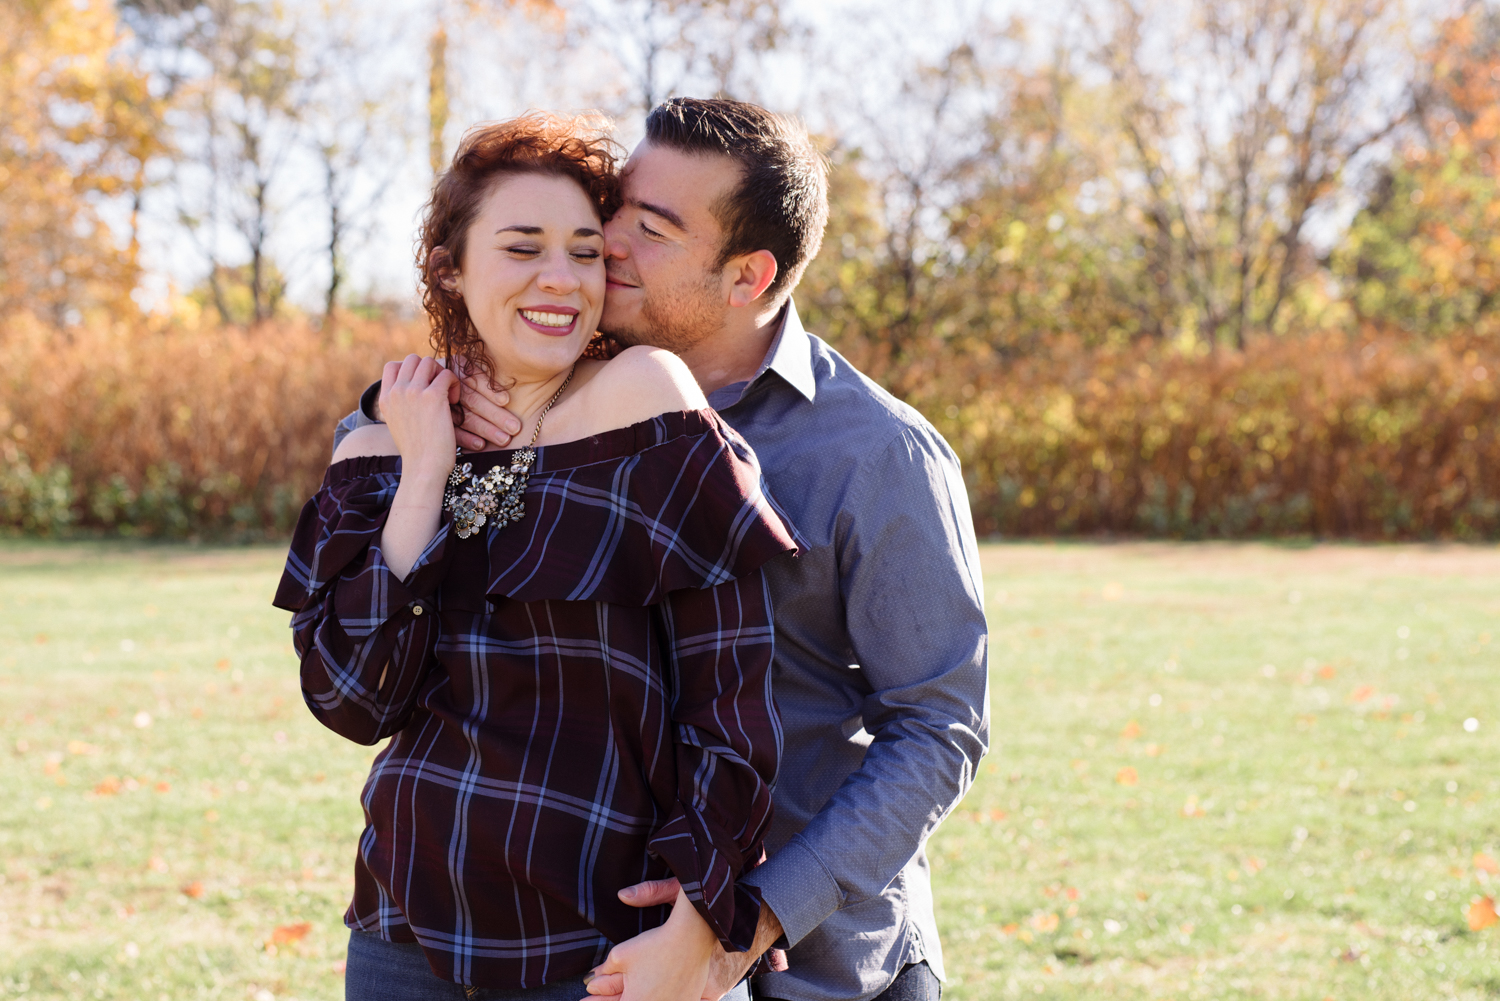 Melissa+Kenny- Watsessing Park Fall Engagement Session- Bloomfield New Jersey- Olivia Christina Photo-47.JPG